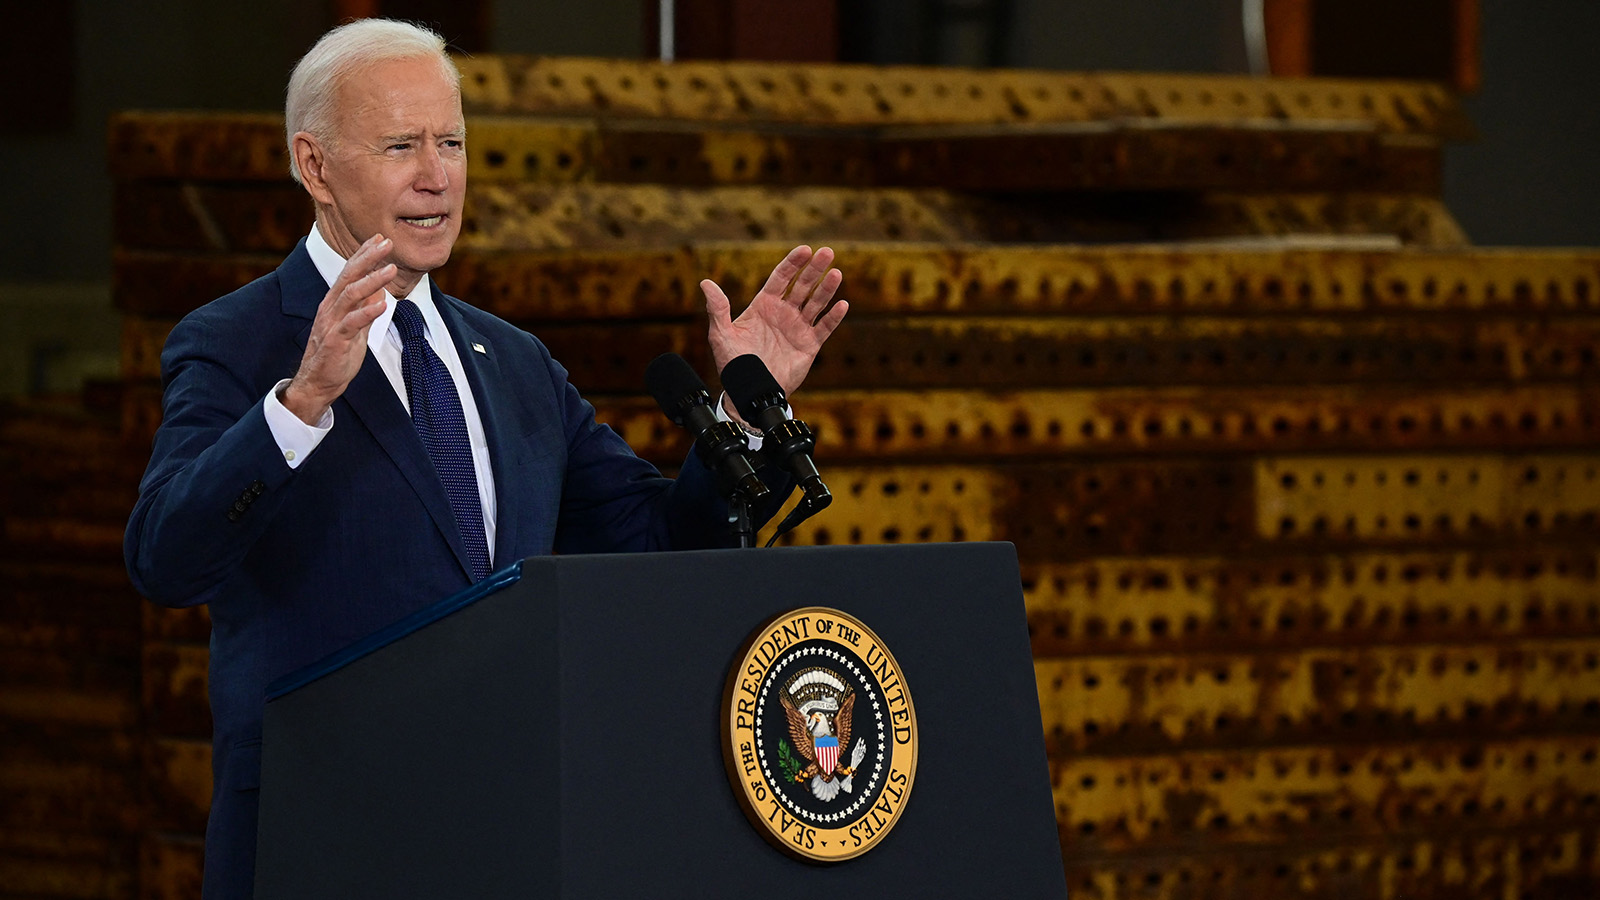 President Joe Biden delivers a speech on infrastructure spending at Carpenters Pittsburgh Training Center on Wednesday, March 31, in Pittsburgh.